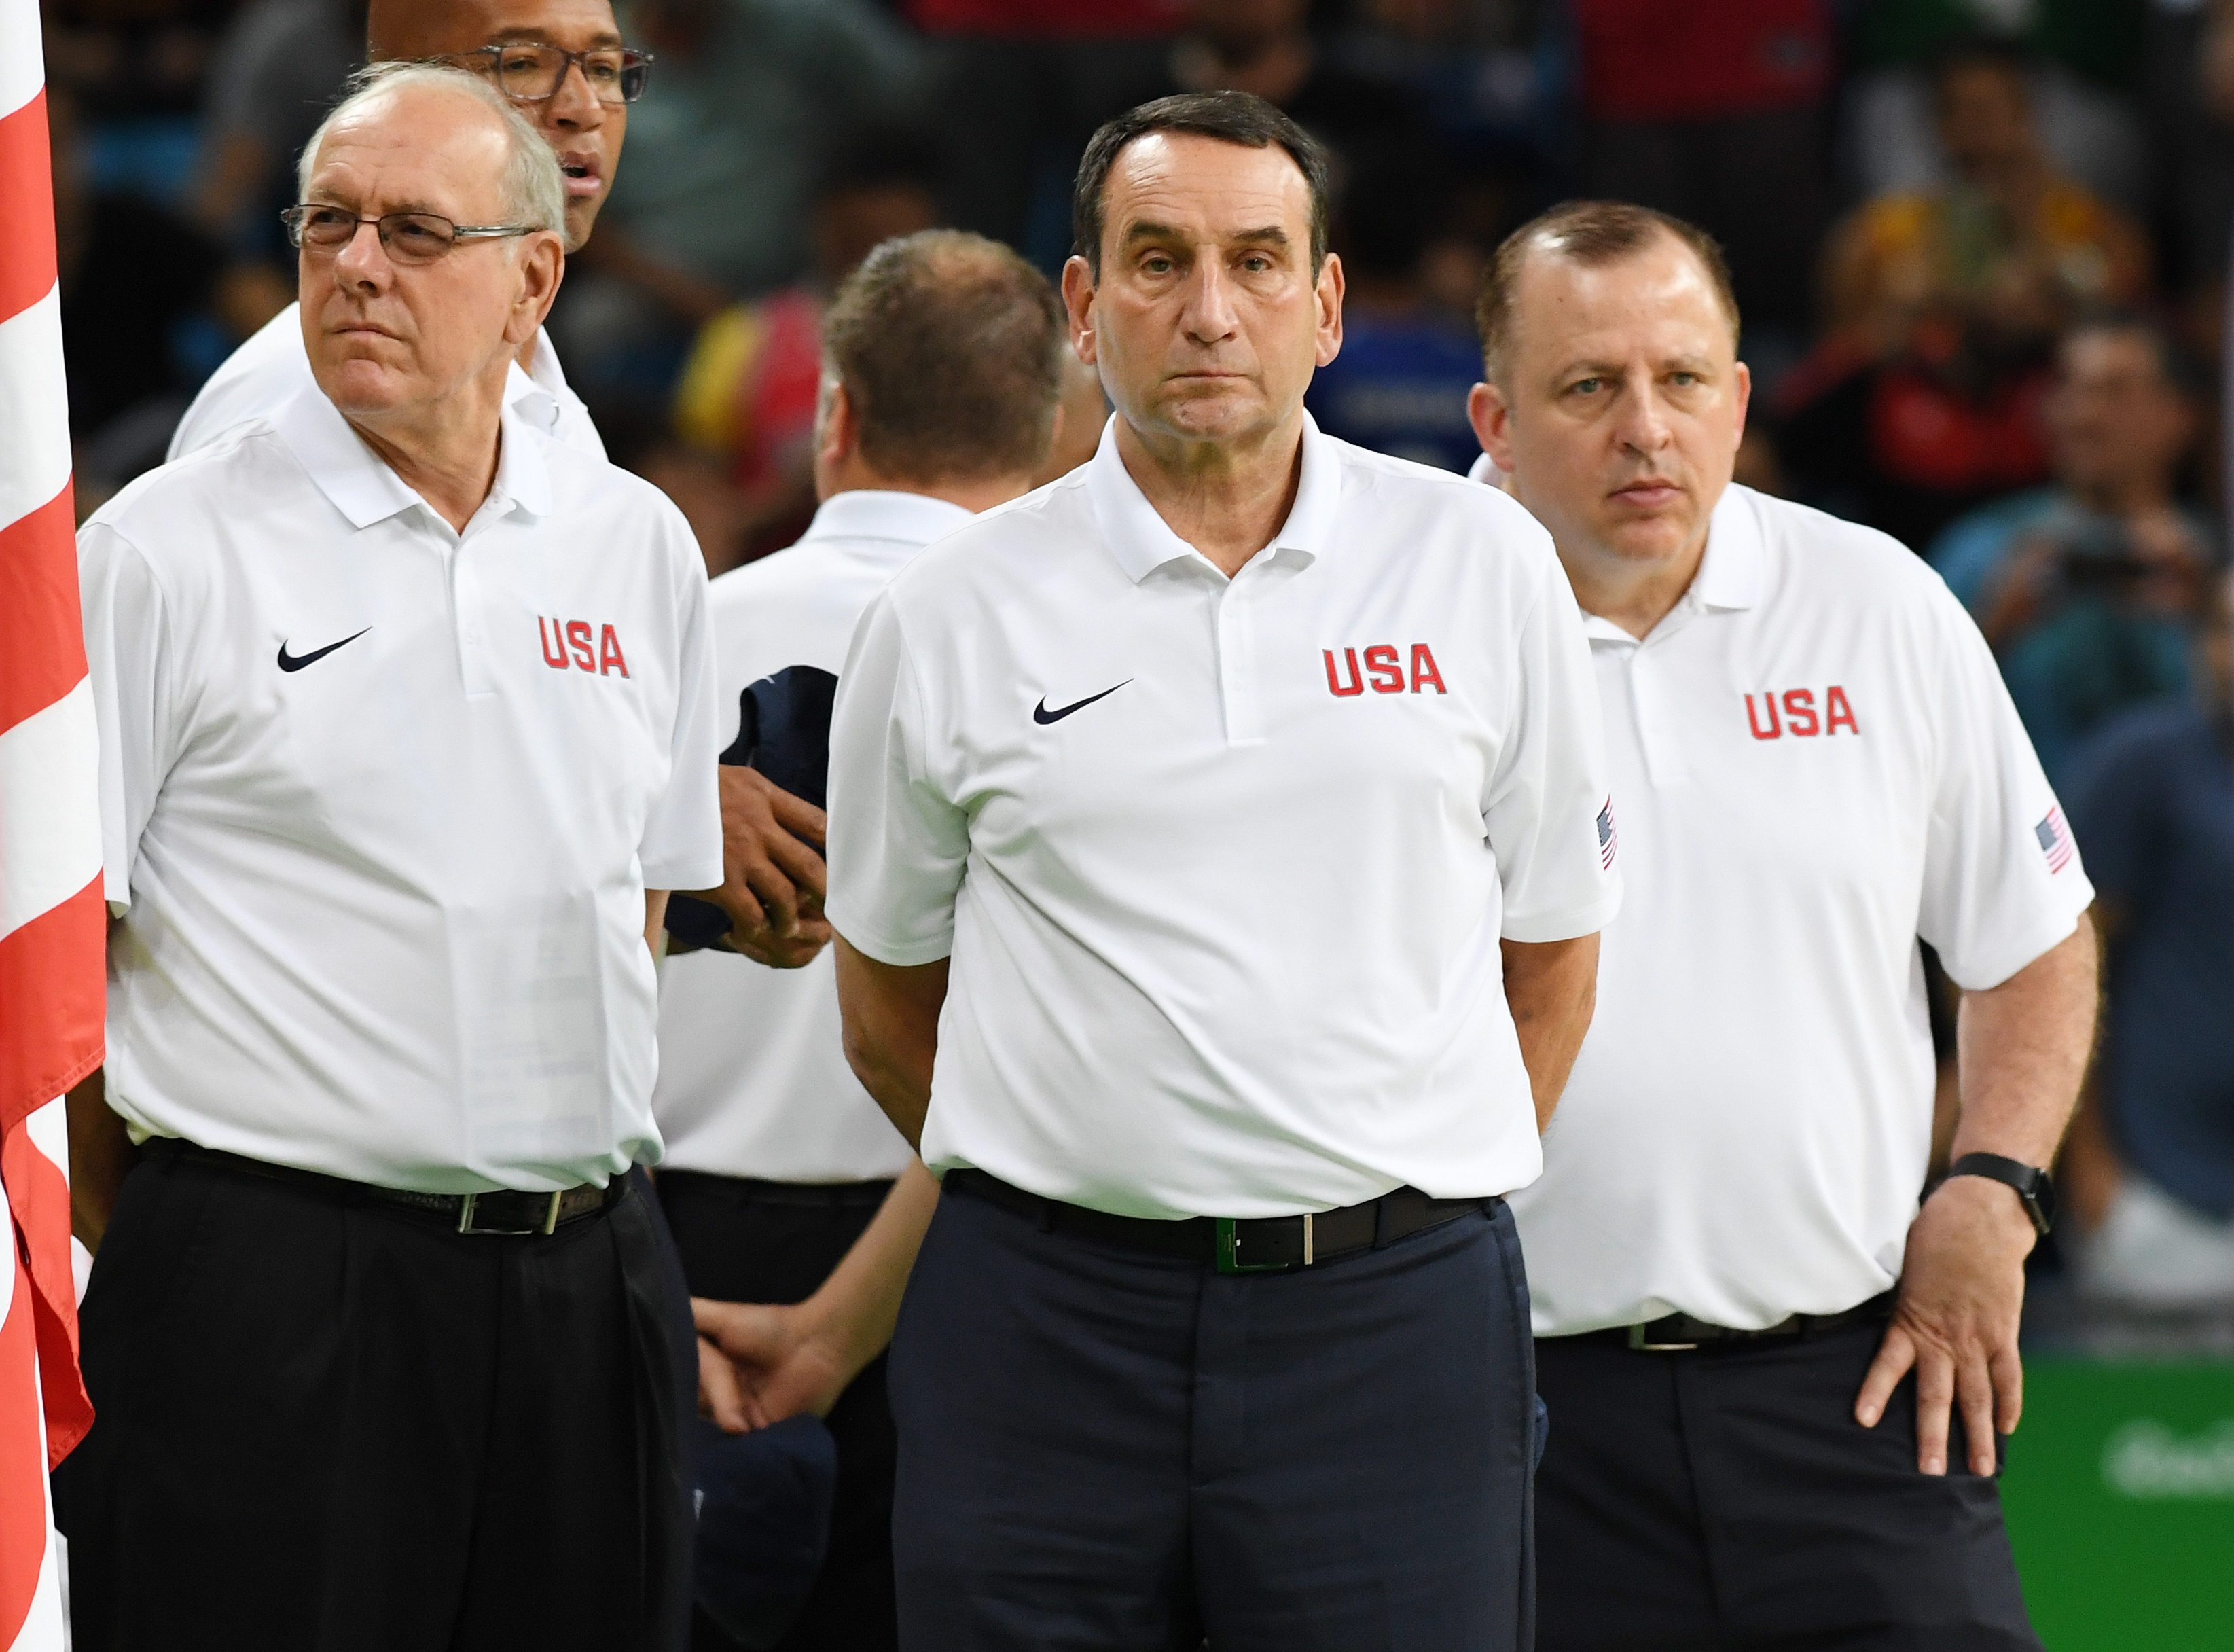 The USA coaching staff prior to the game against Venezuela.